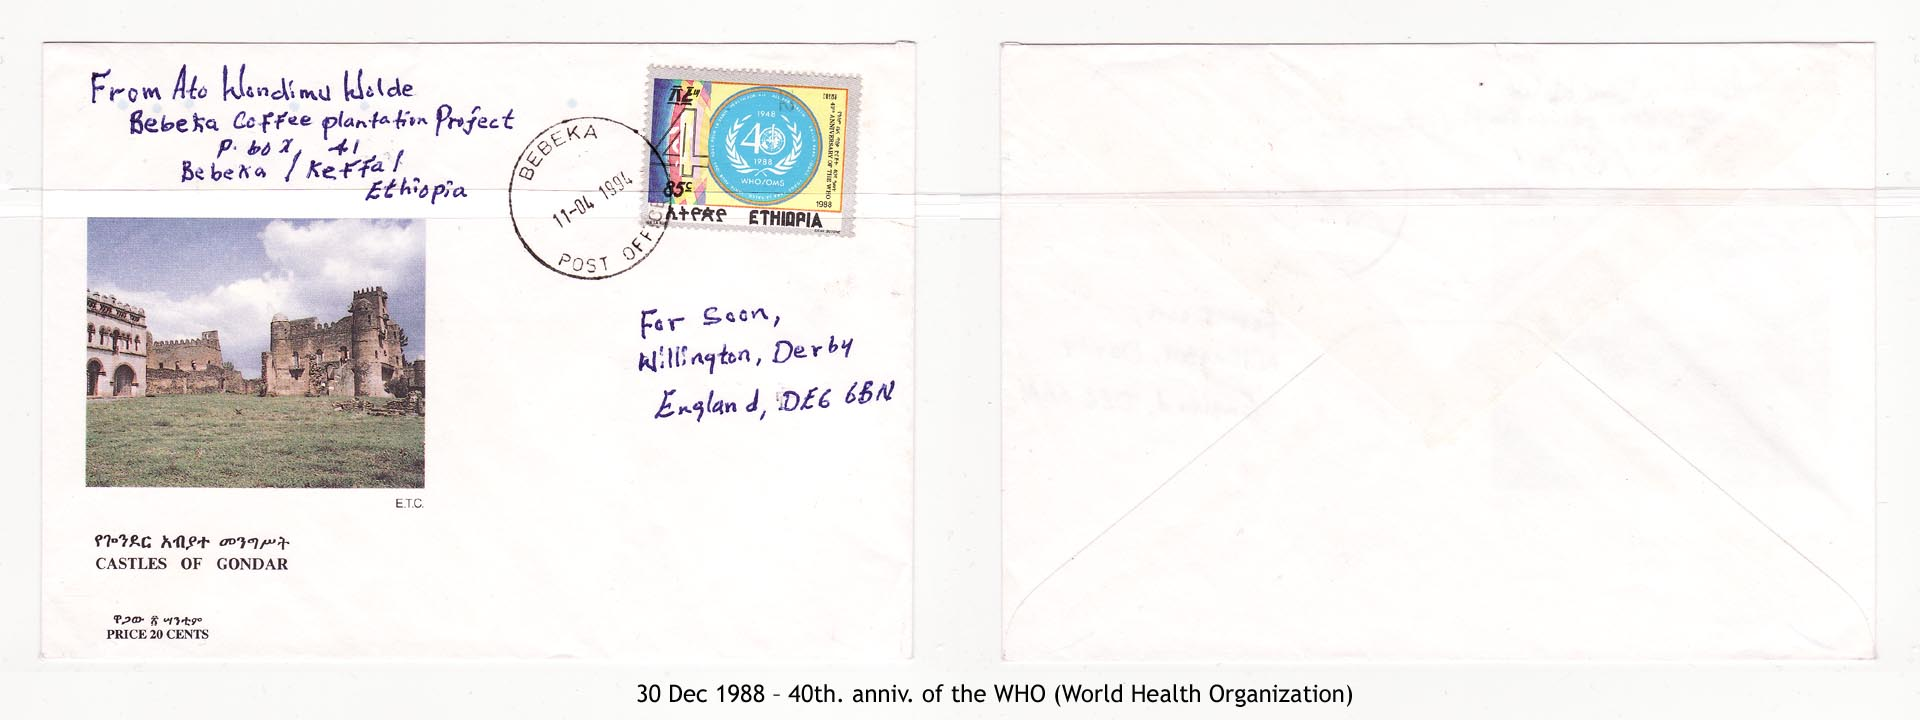 19881230 – 40th. anniv. of the WHO (World Health Organization)